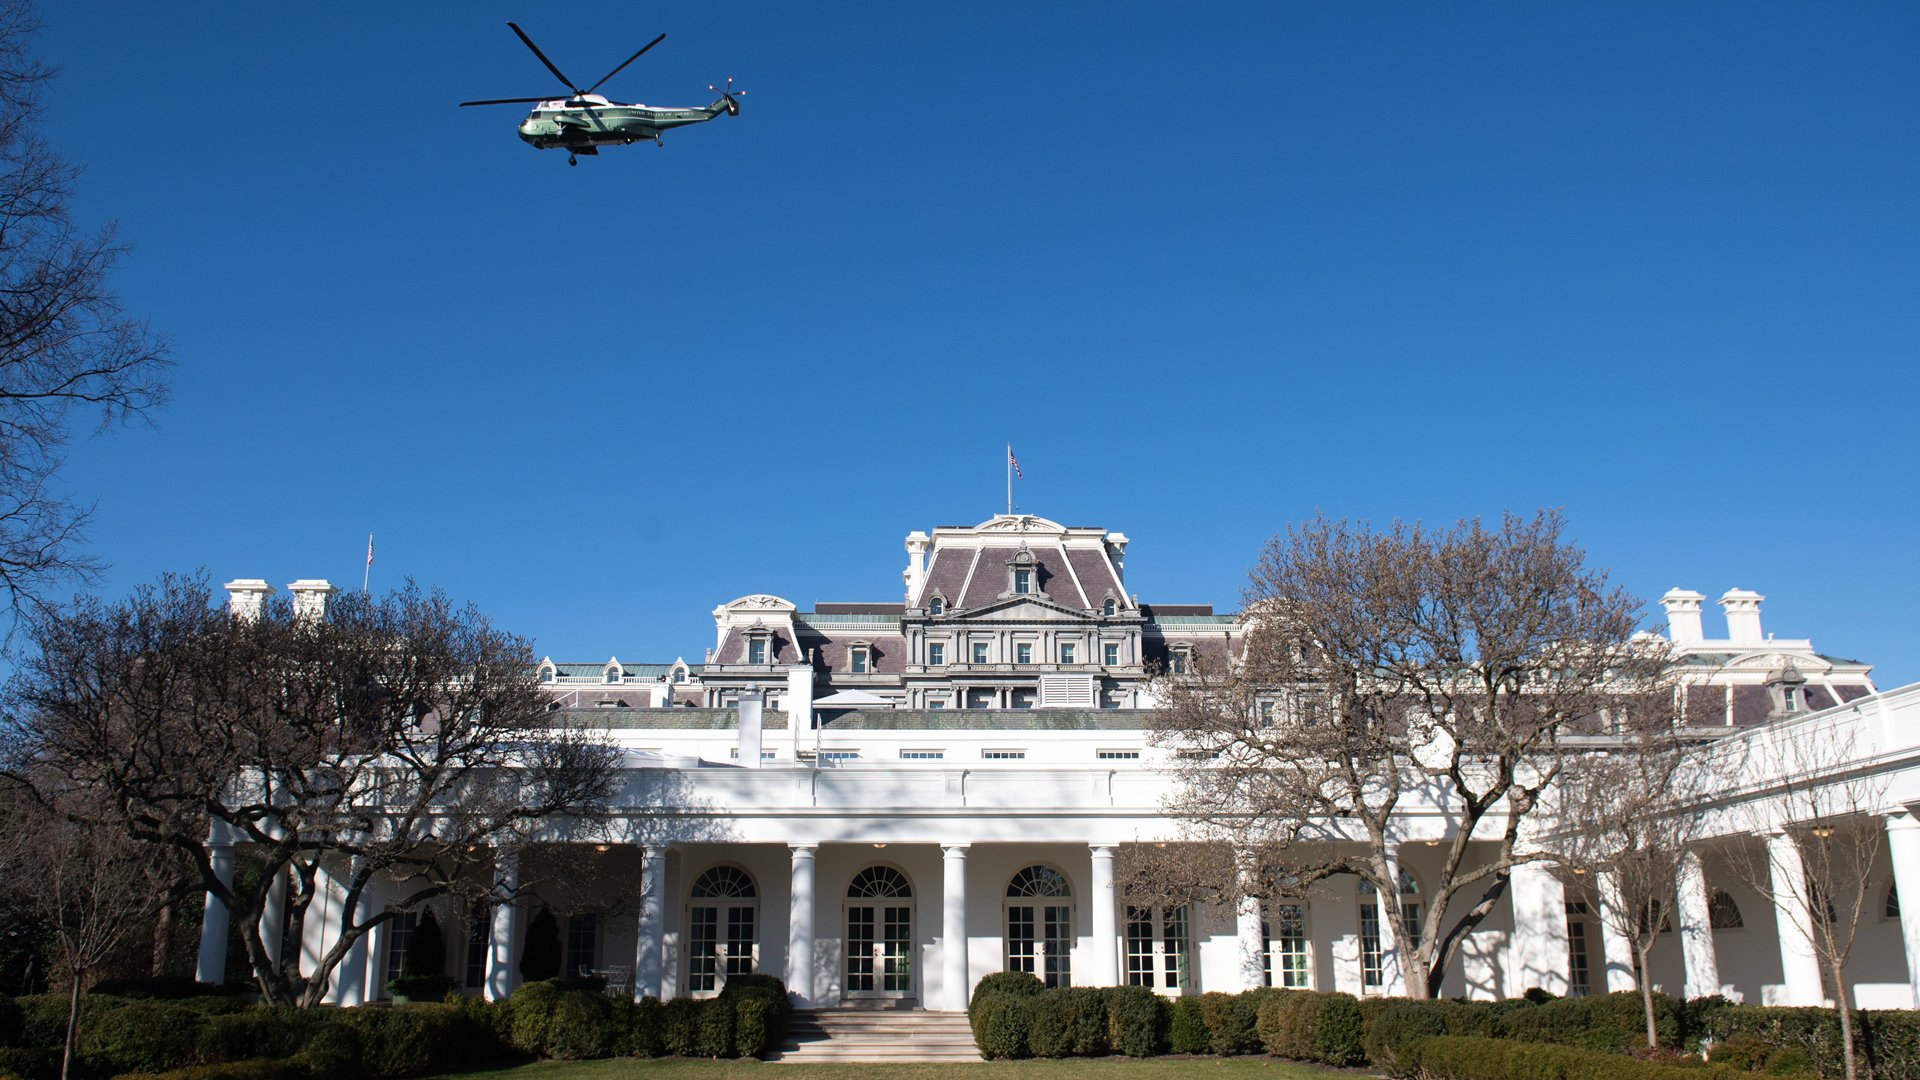 A backup helicopter to Marine One flies over the West Wing and Rose Garden of the White House as US President Donald Trump and First Lady Melania Trump depart the South Lawn in Washington, DC, February 23, 2020, as they leave on a 2-day trip to India. (Credit: Saul Loeb/AFP/Getty Images)